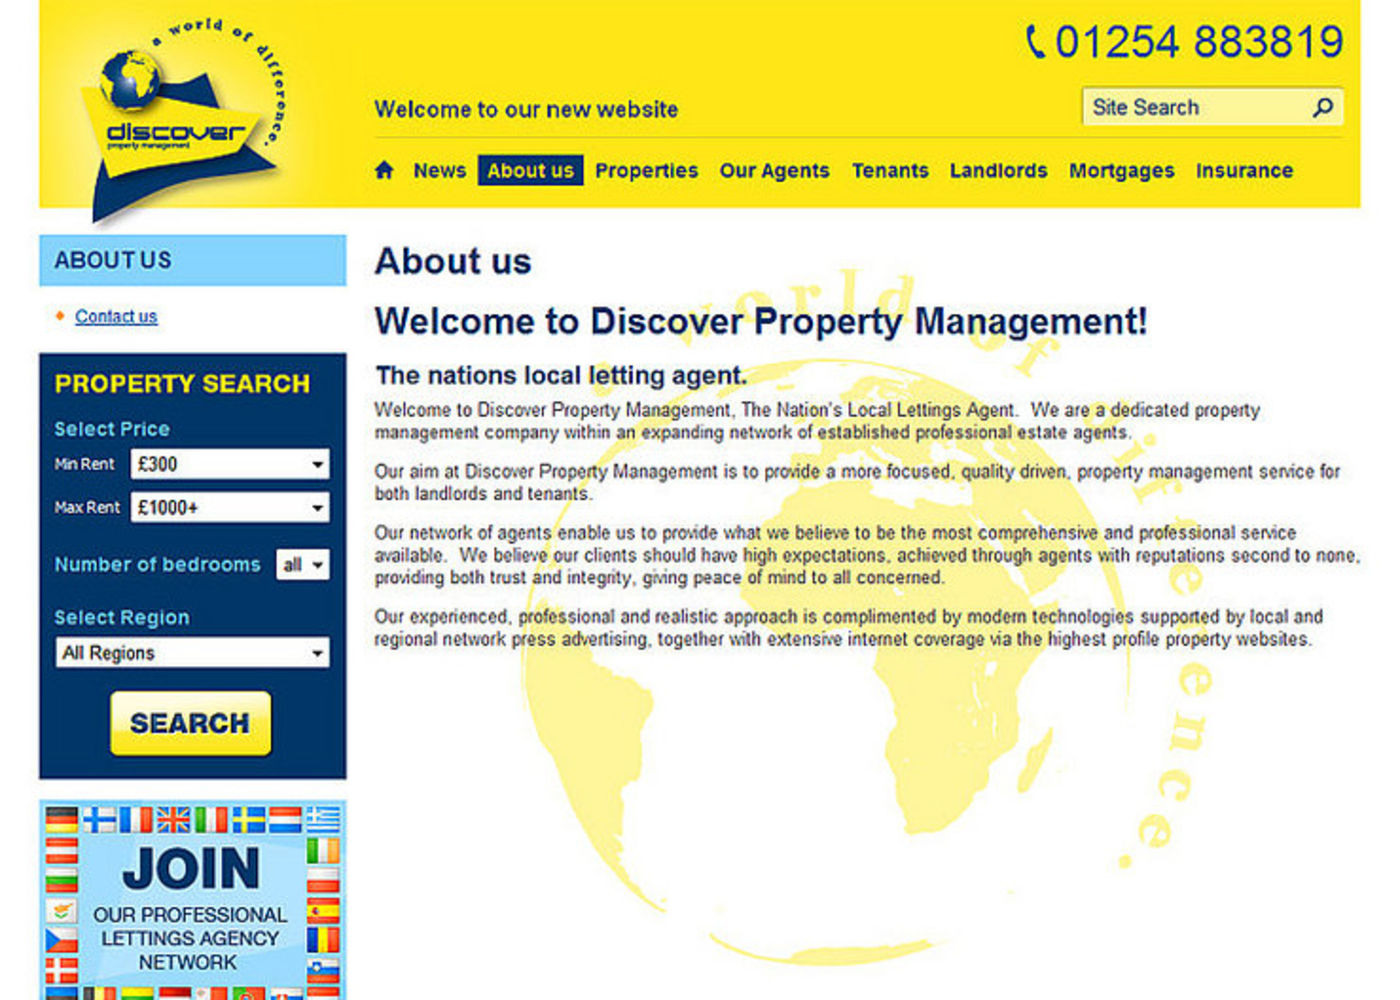 Discover Property Management Regular page